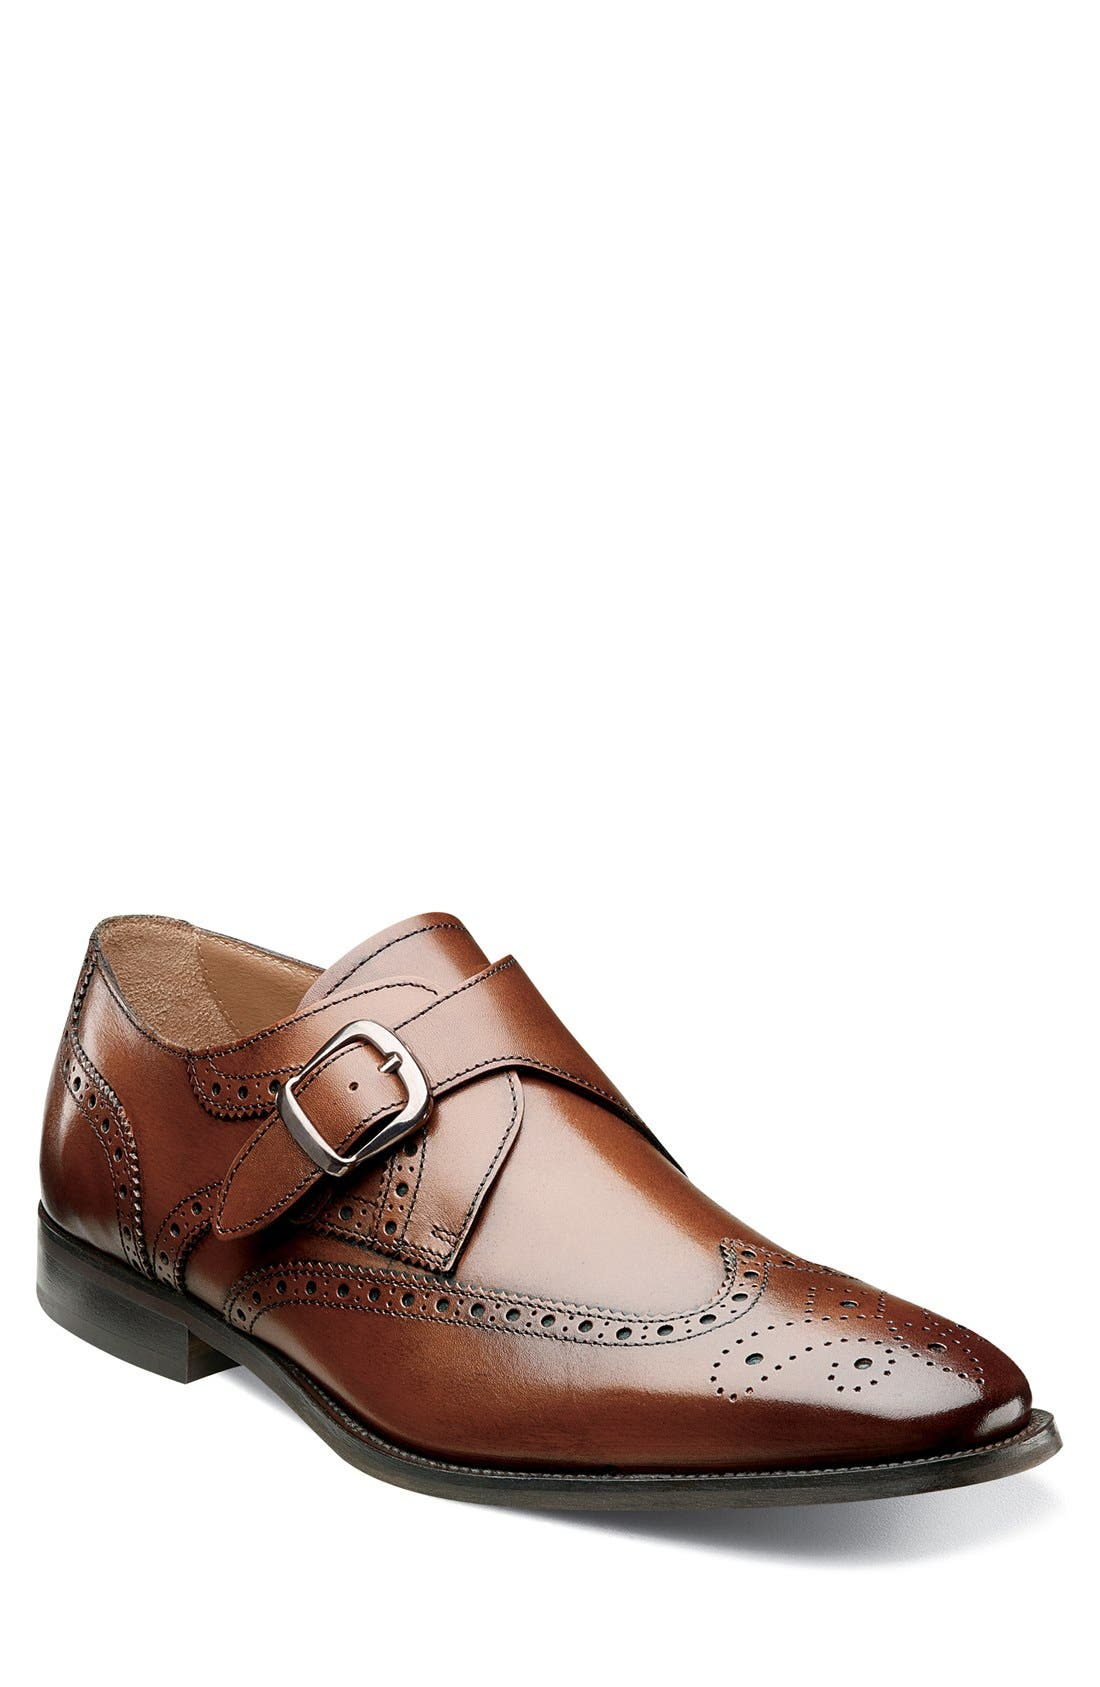 Main Image - Florsheim 'Sabato' Wingtip Monk Strap Shoe (Men)